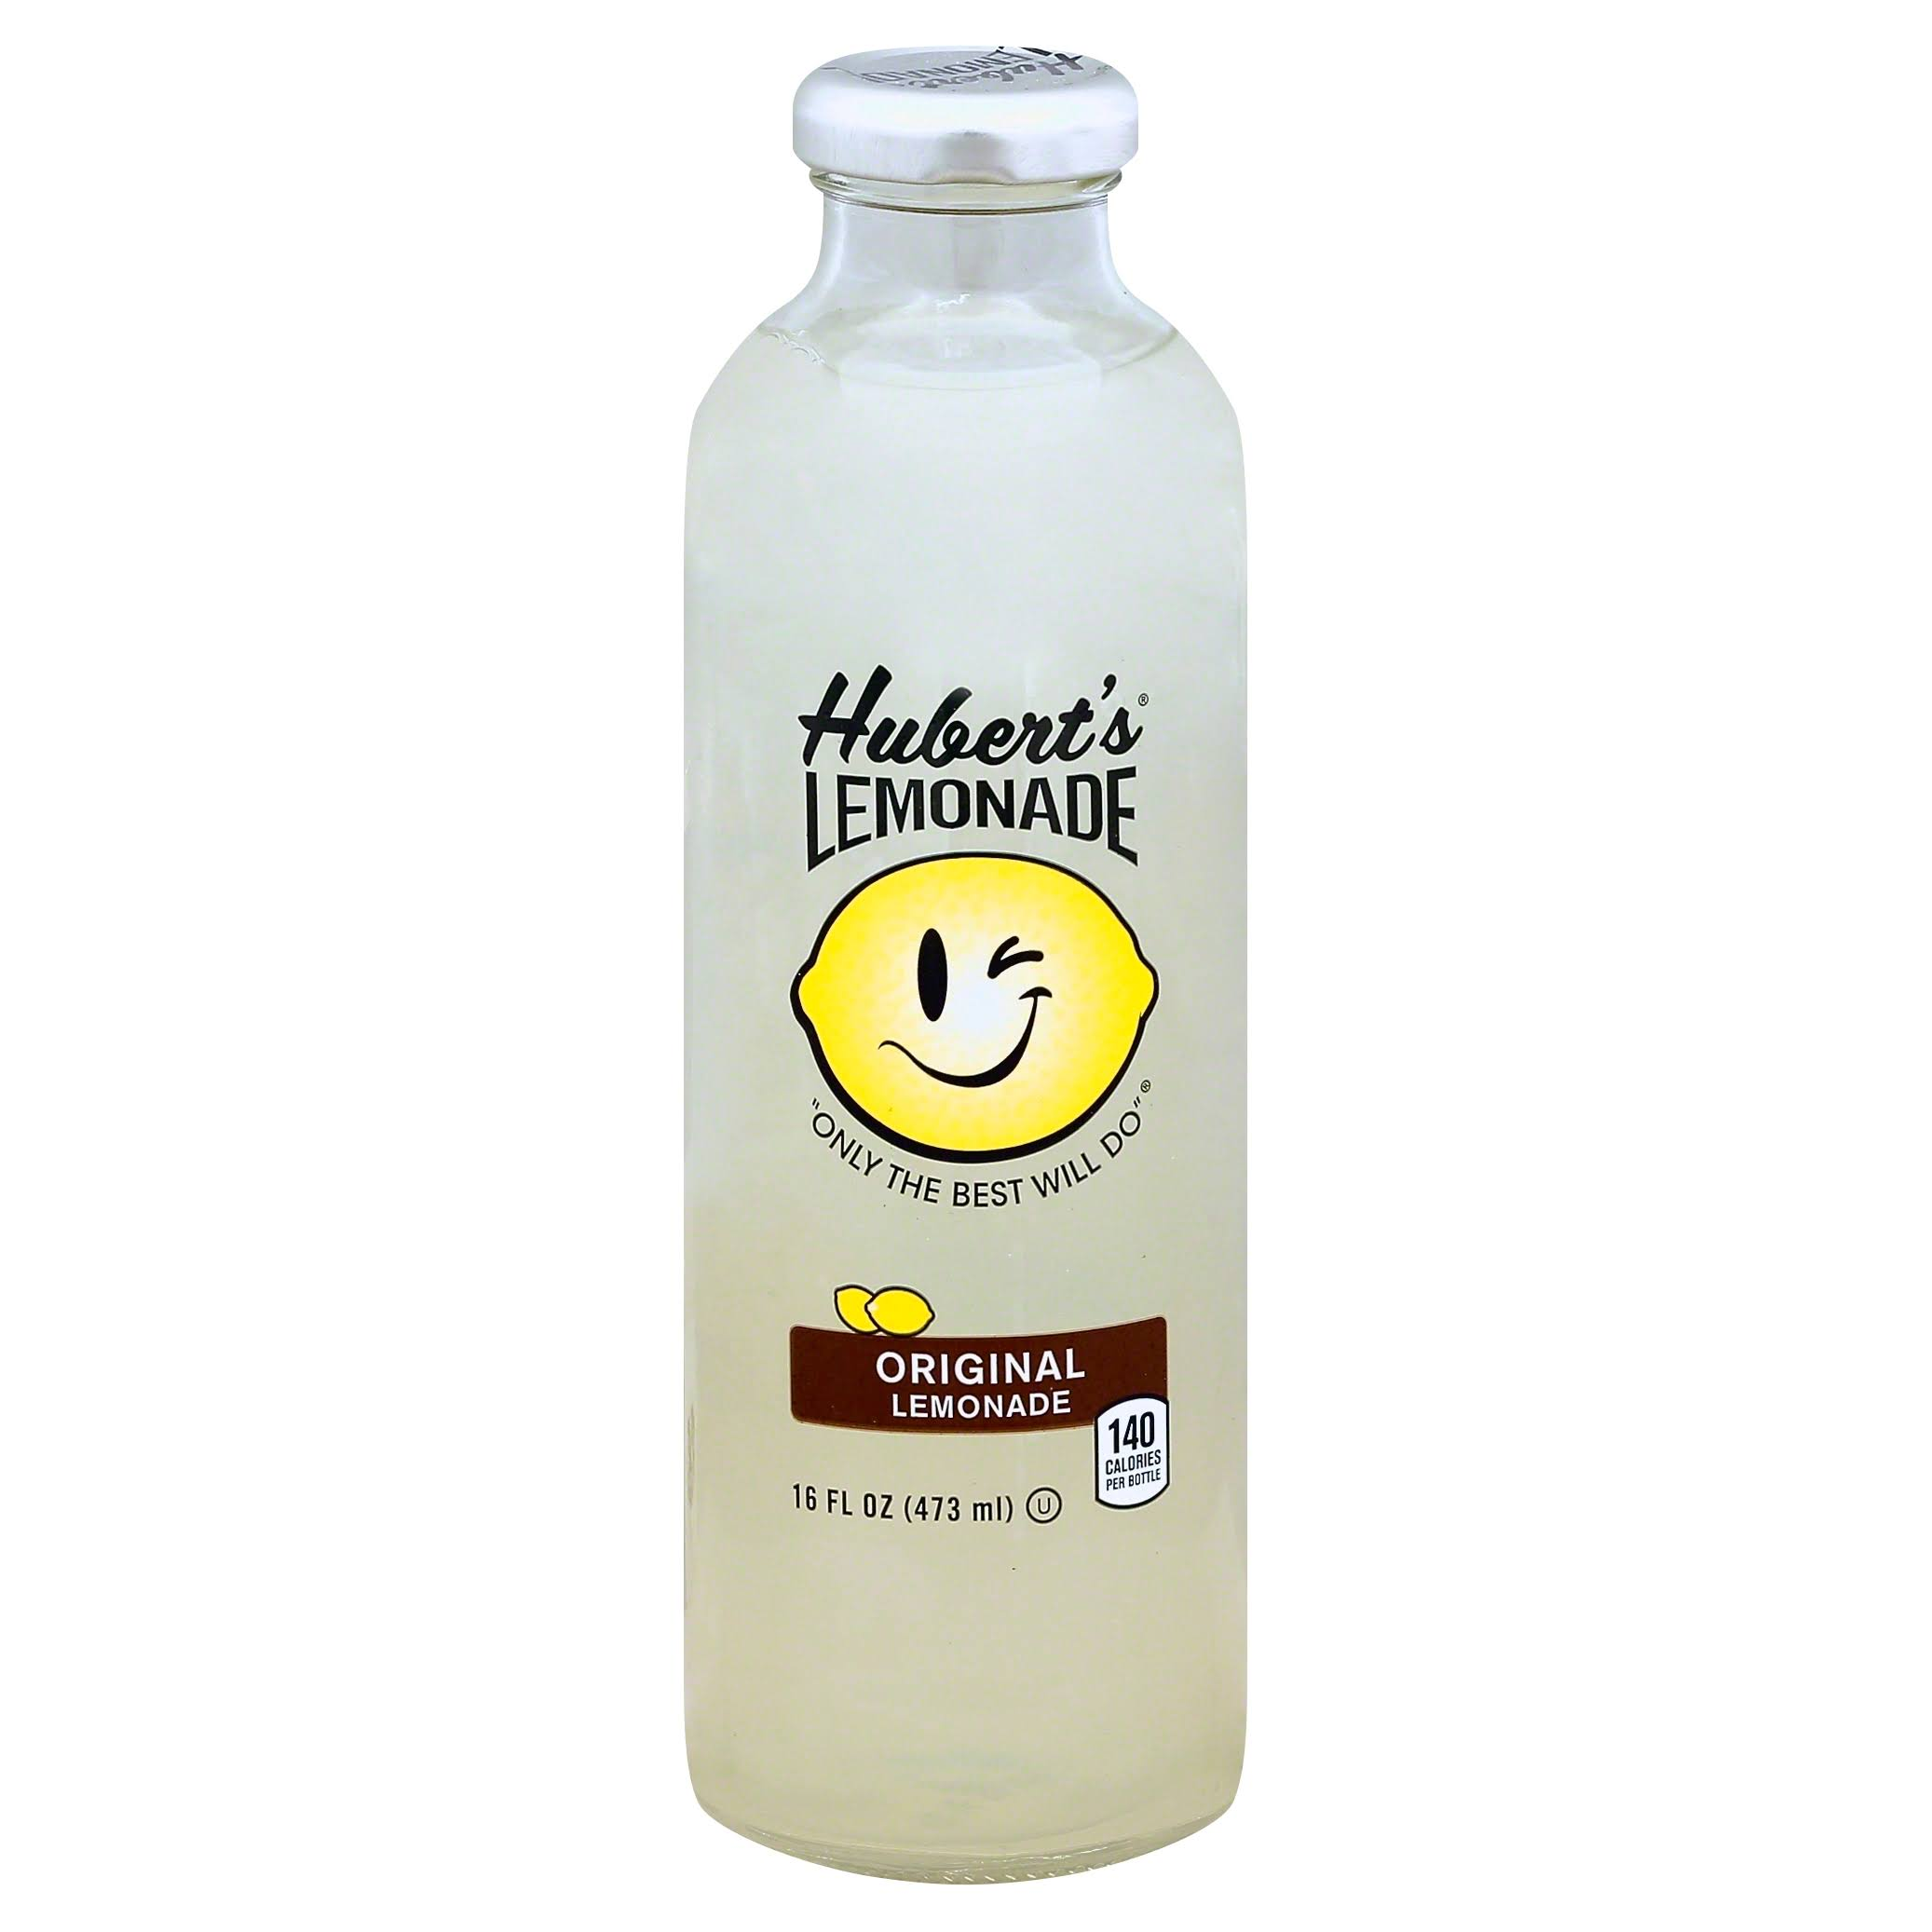 Huberts Lemonade, Original - 16 fl oz